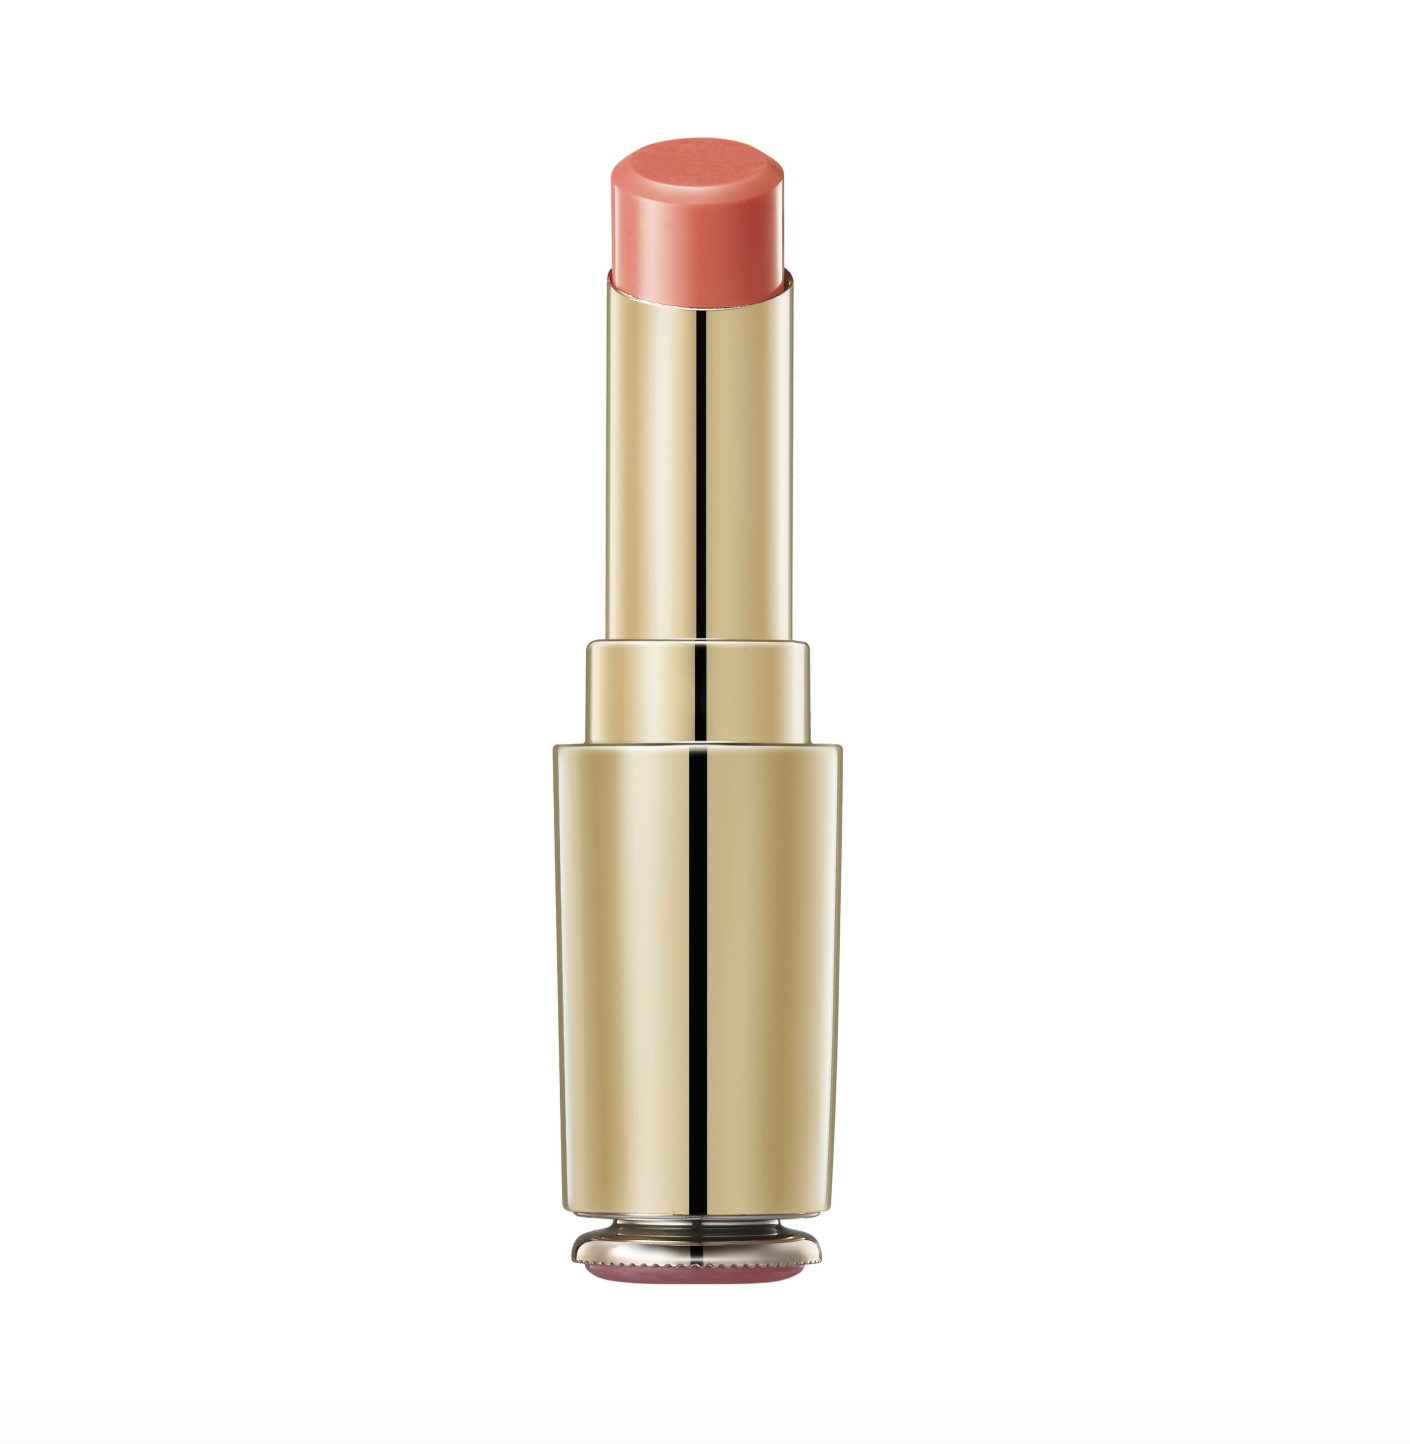 Sulwhasoo essential Lip Serum Stick blossom Coral